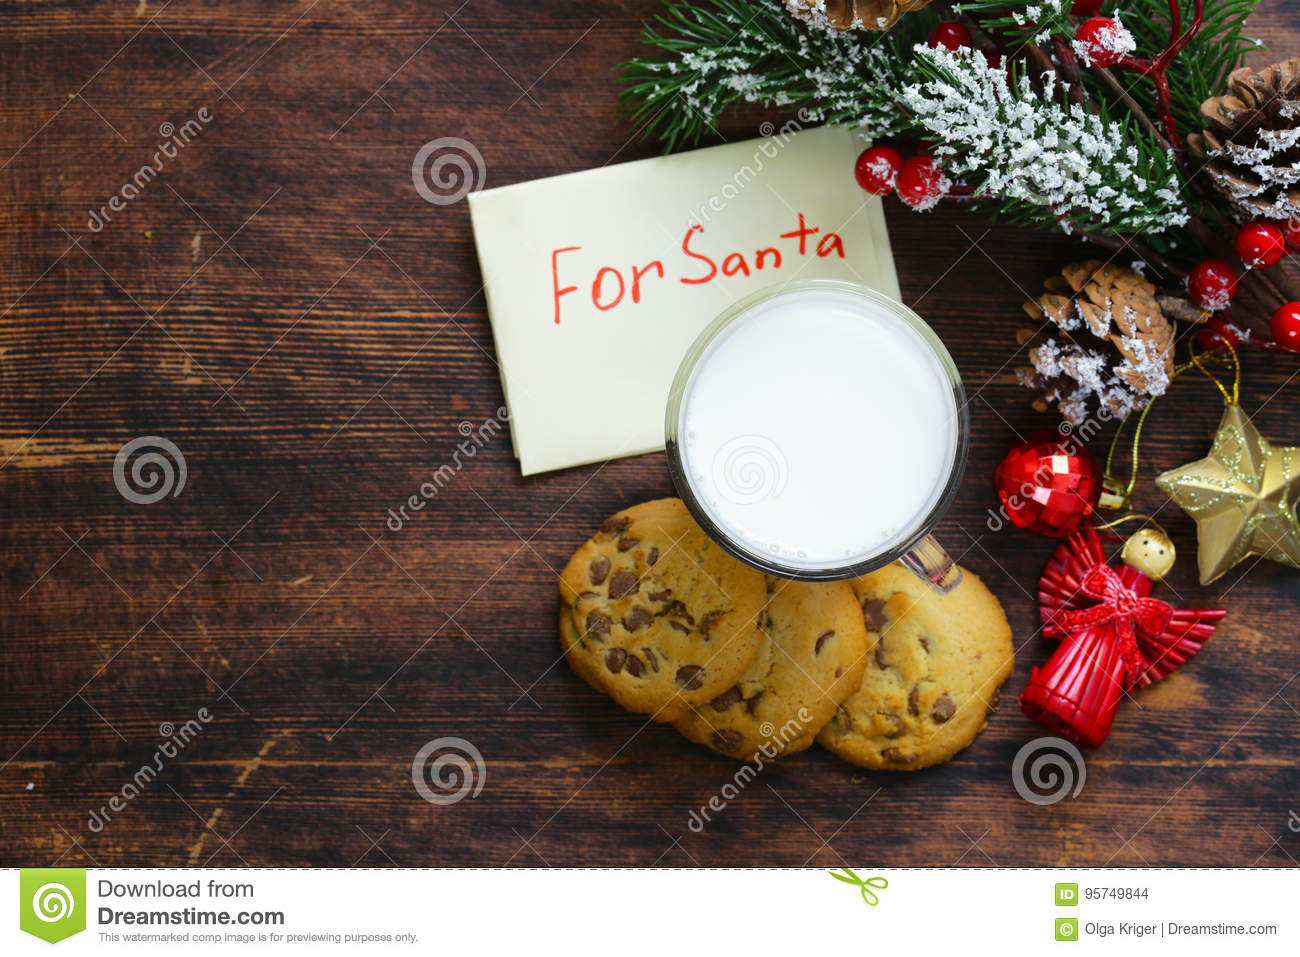 Cookies and a glass of milk for Santa